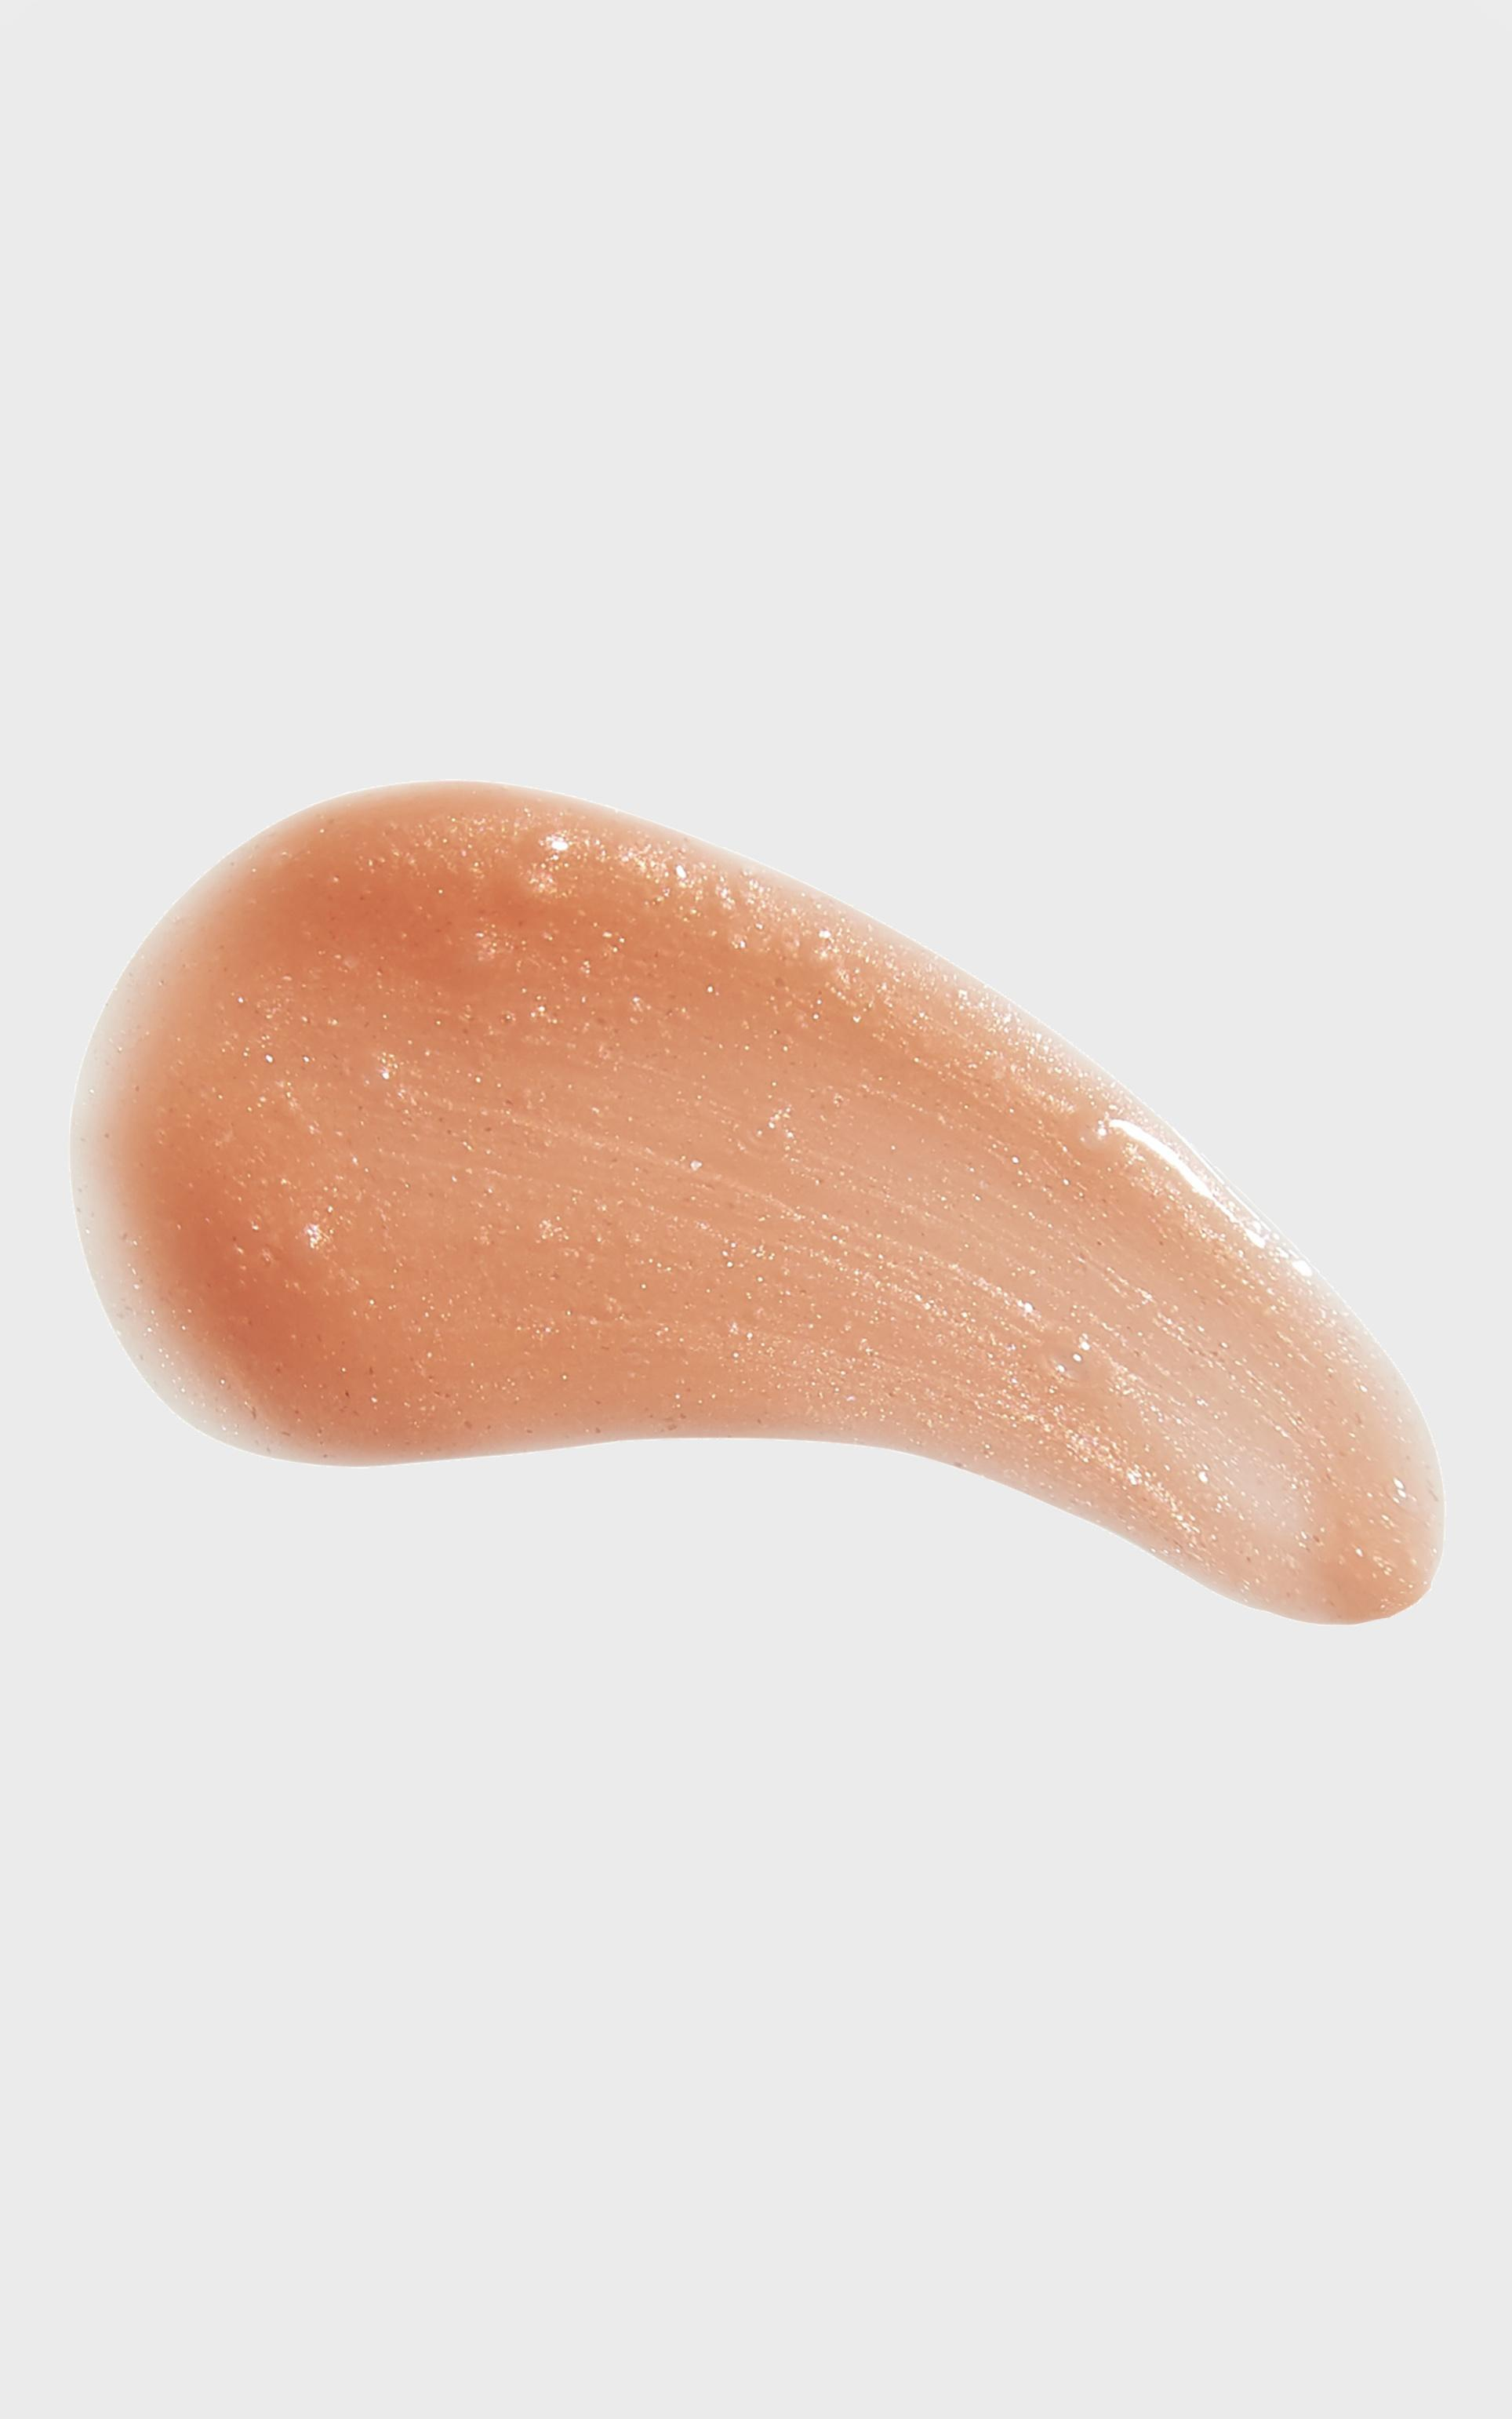 MCoBeauty x Sophie Monk - Pout Gloss in Tickle, Beige, hi-res image number null